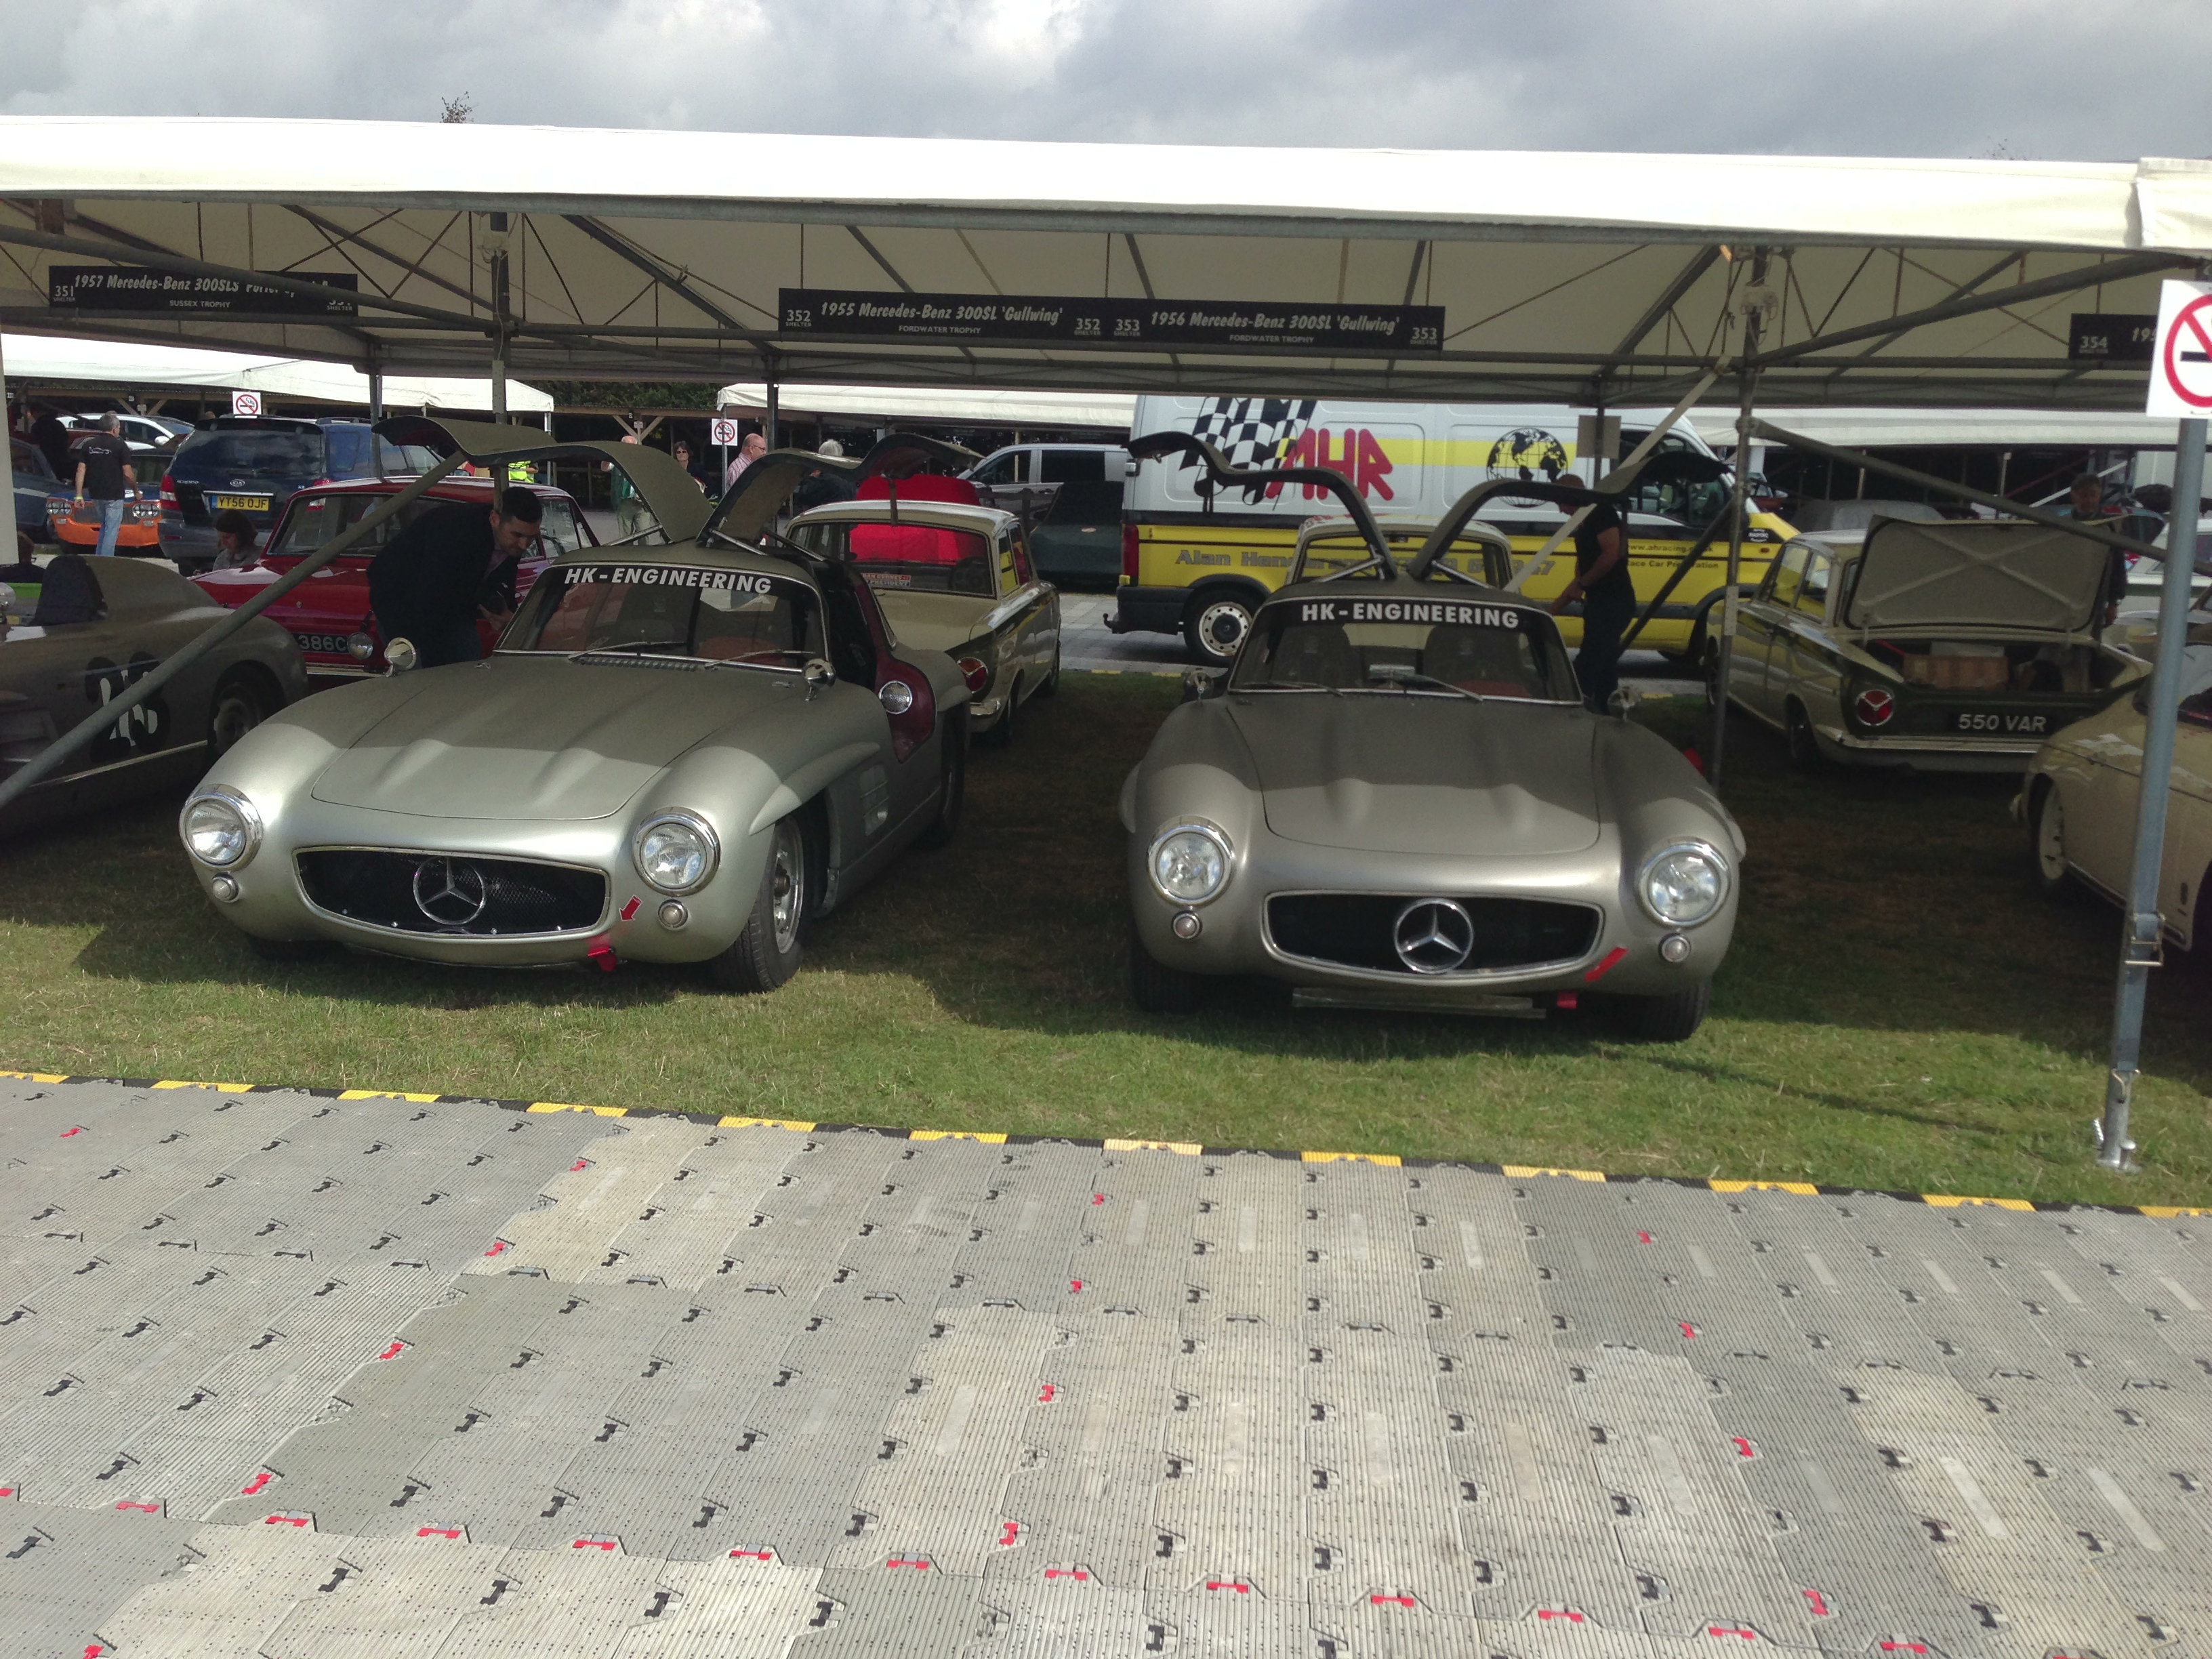 2 Gullwings at Goodwood